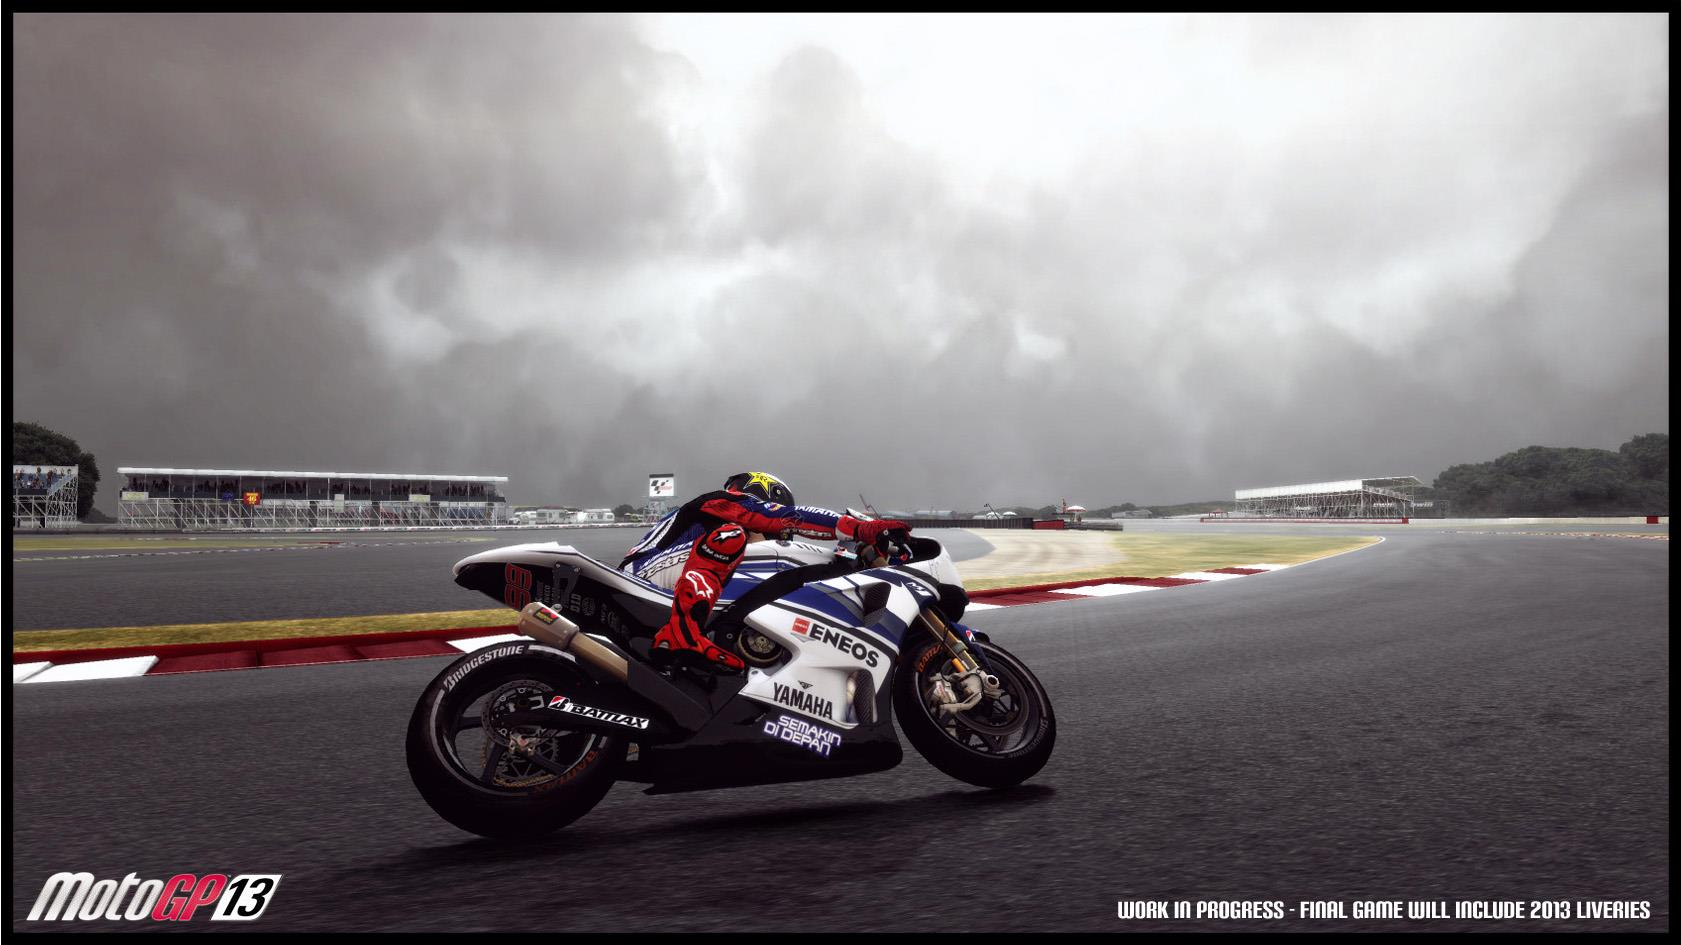 MotoGP '13 Silverstone screenshots showcase dynamic weather